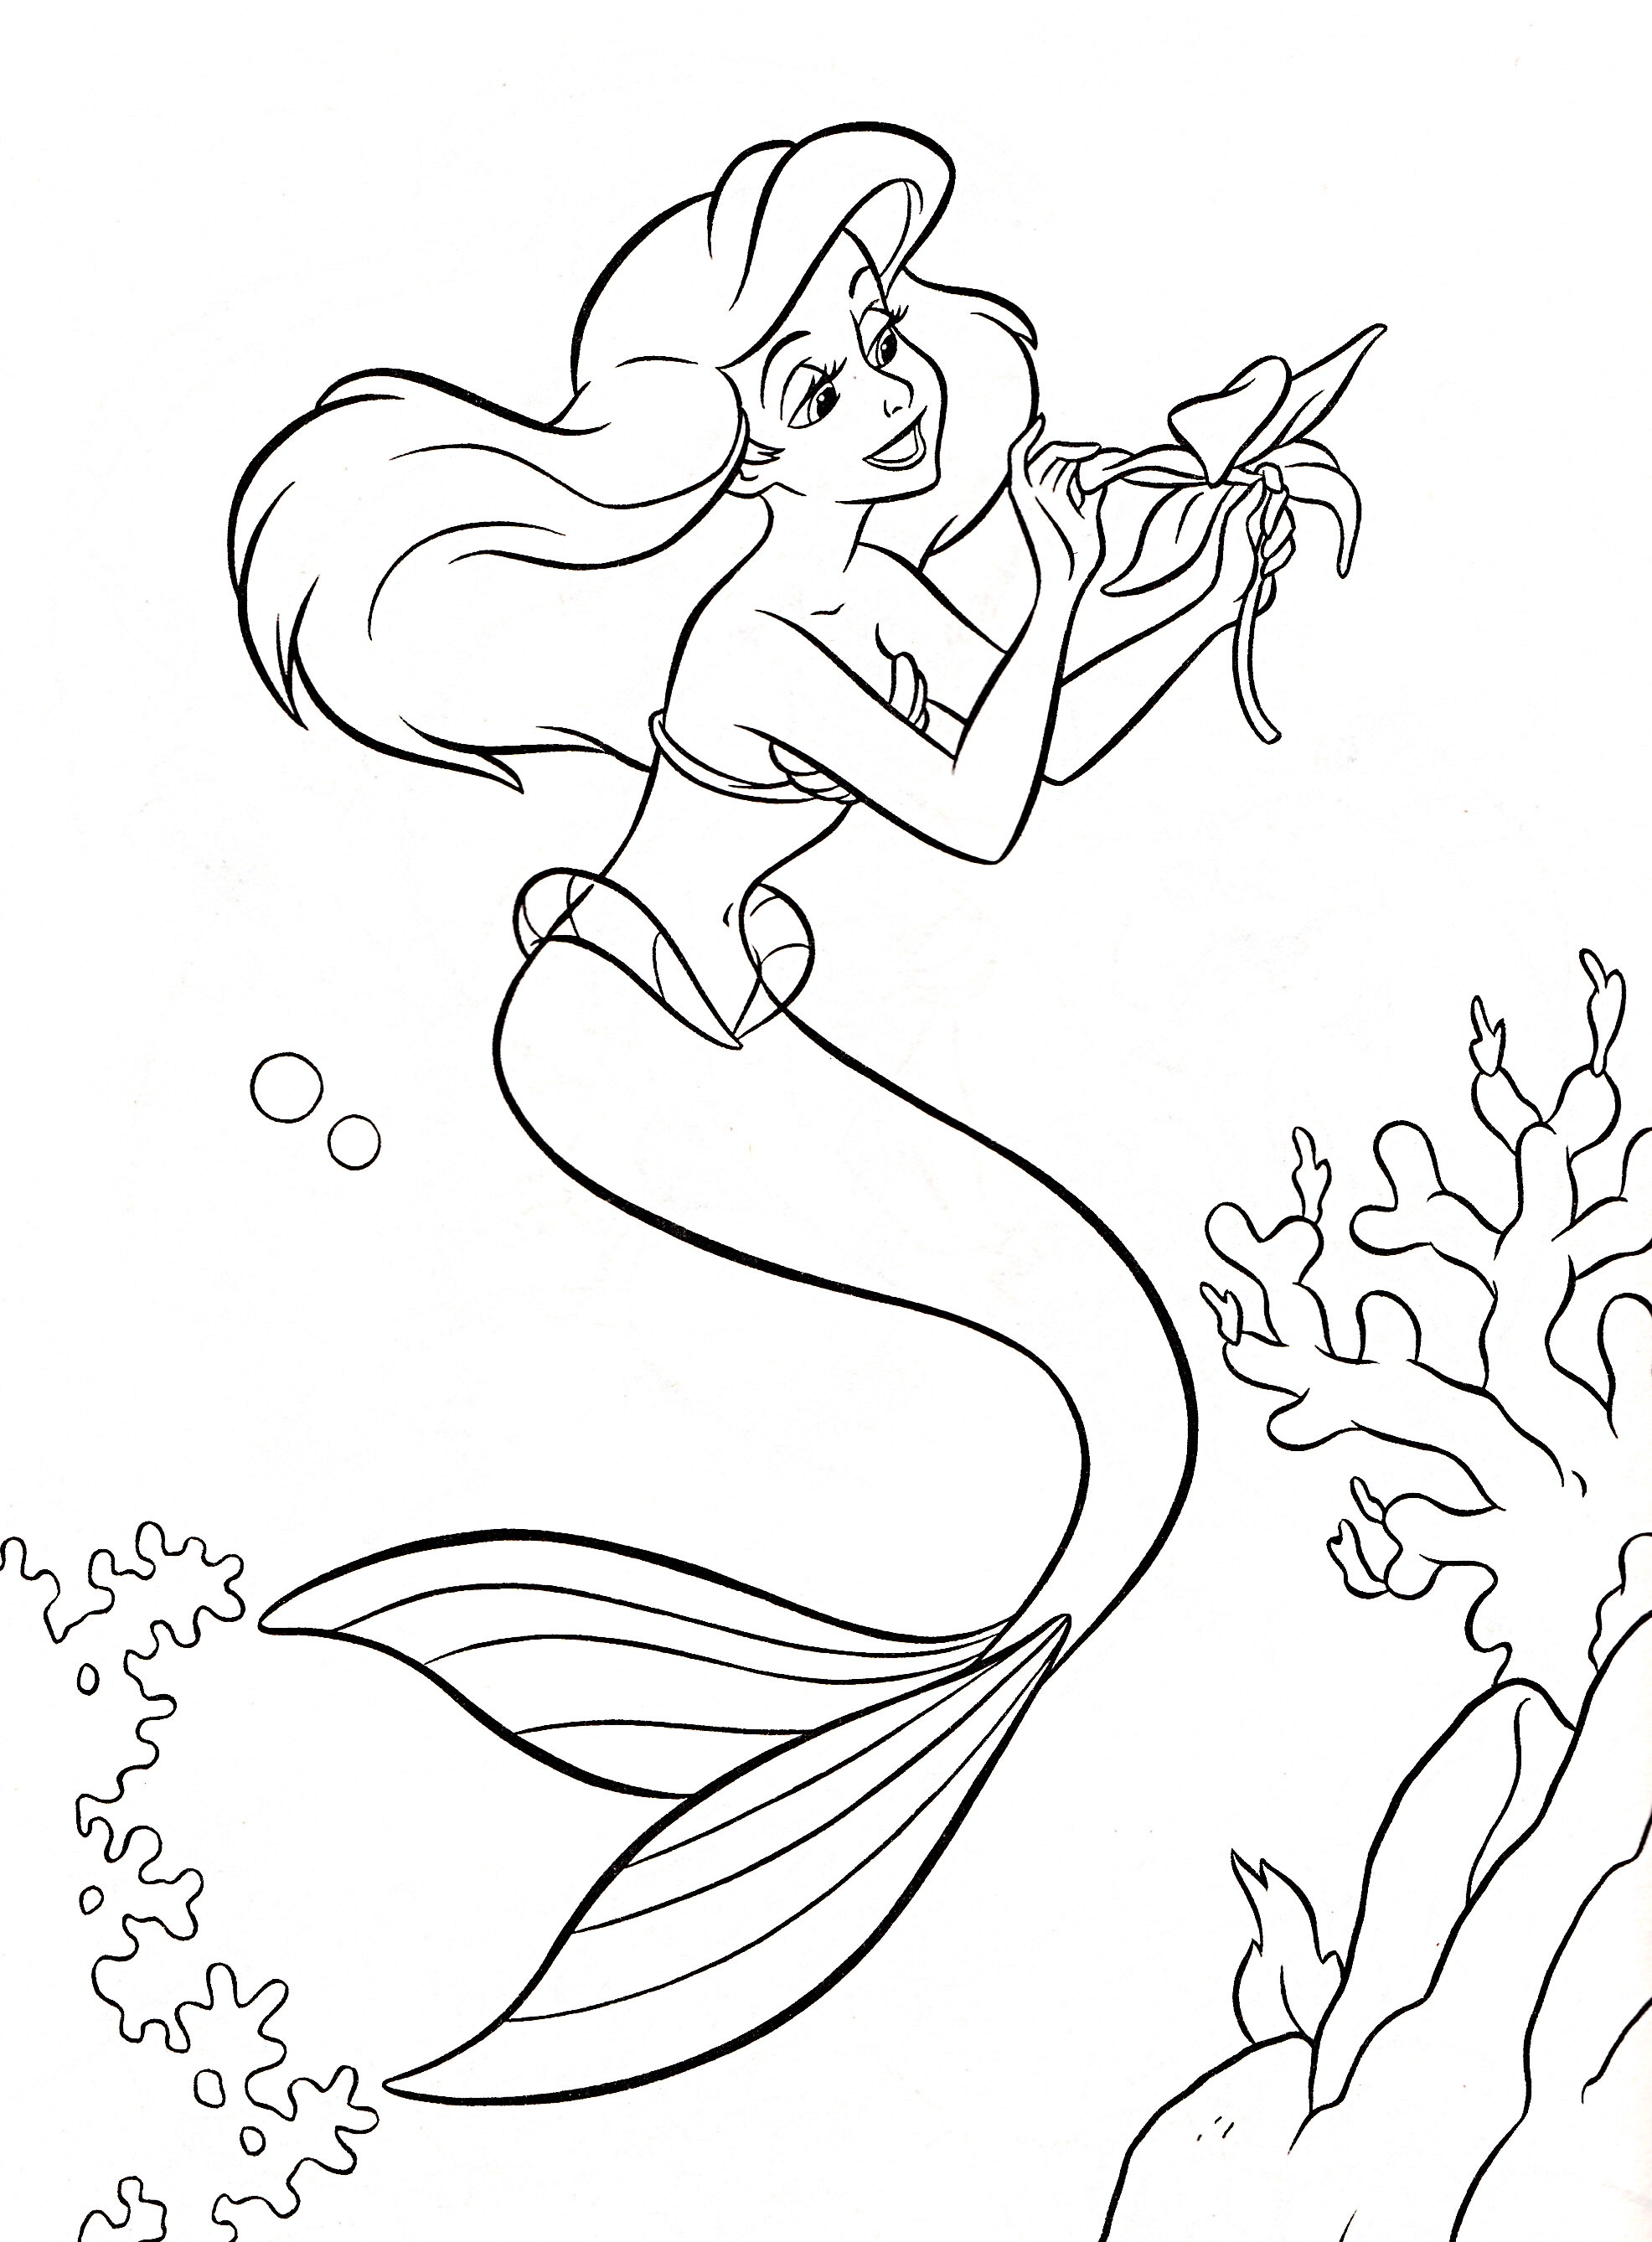 Disney Coloring Pages (23) | Coloring Kids